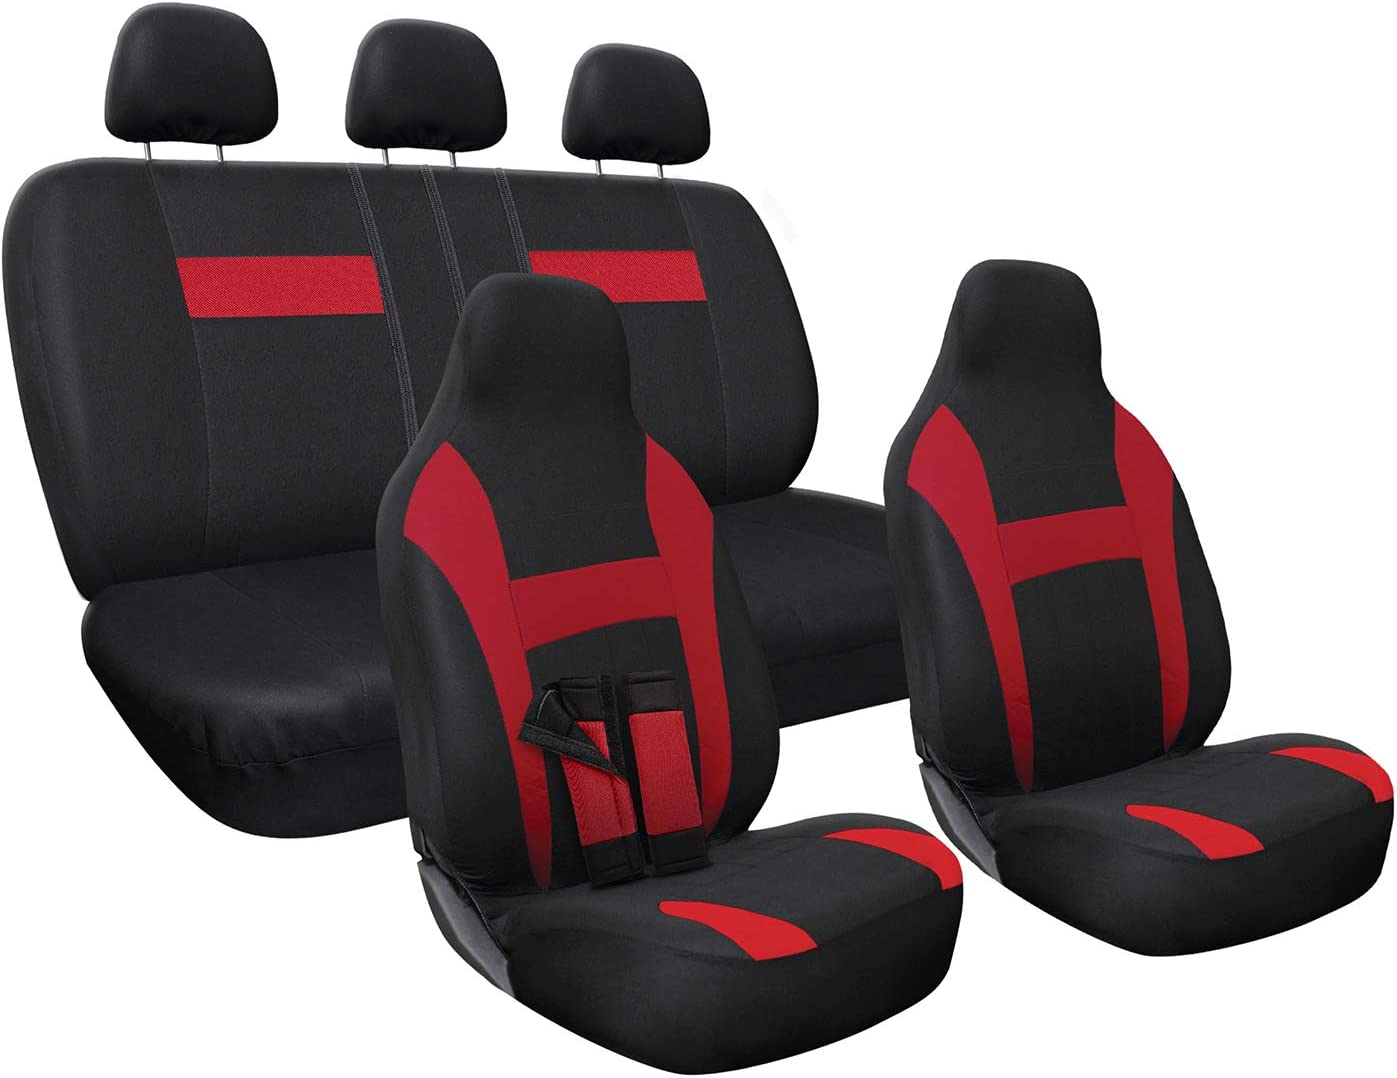 Universal Fit for Cars 10 pc Complete Set Truck Van OxGord Car Seat Cover SUV Poly Cloth Two-Tone with Front Low Bucket and 50-50 or 60-40 Rear Split Bench